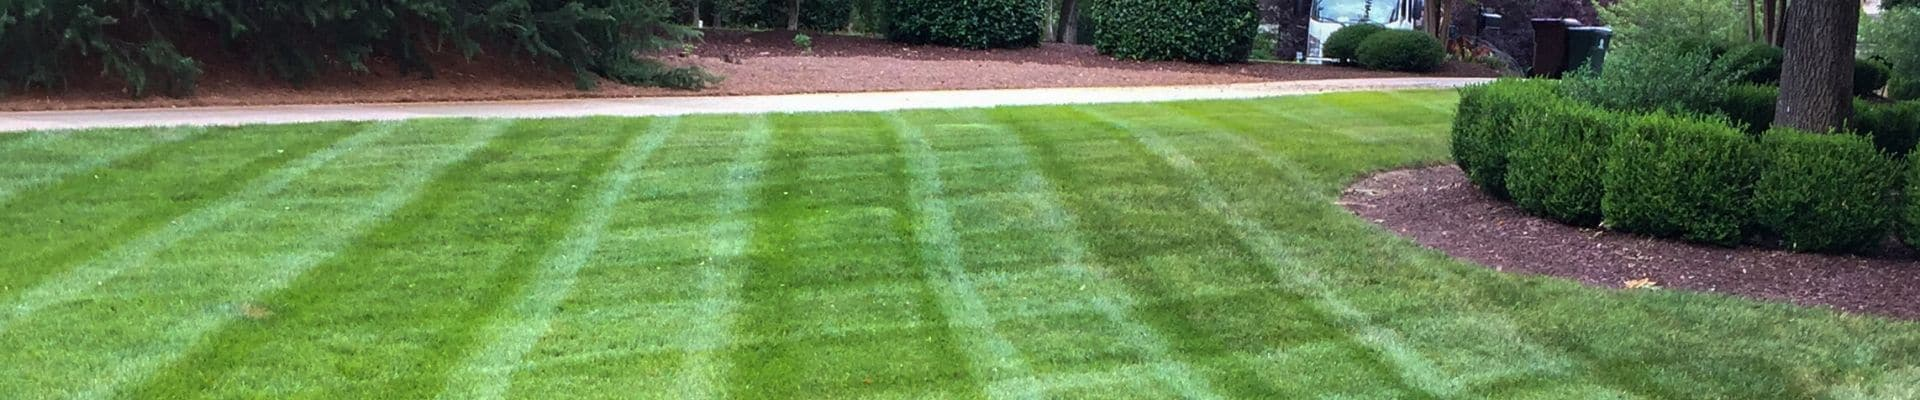 Lawn mowed by ECM Landscaping and Lawn Care.